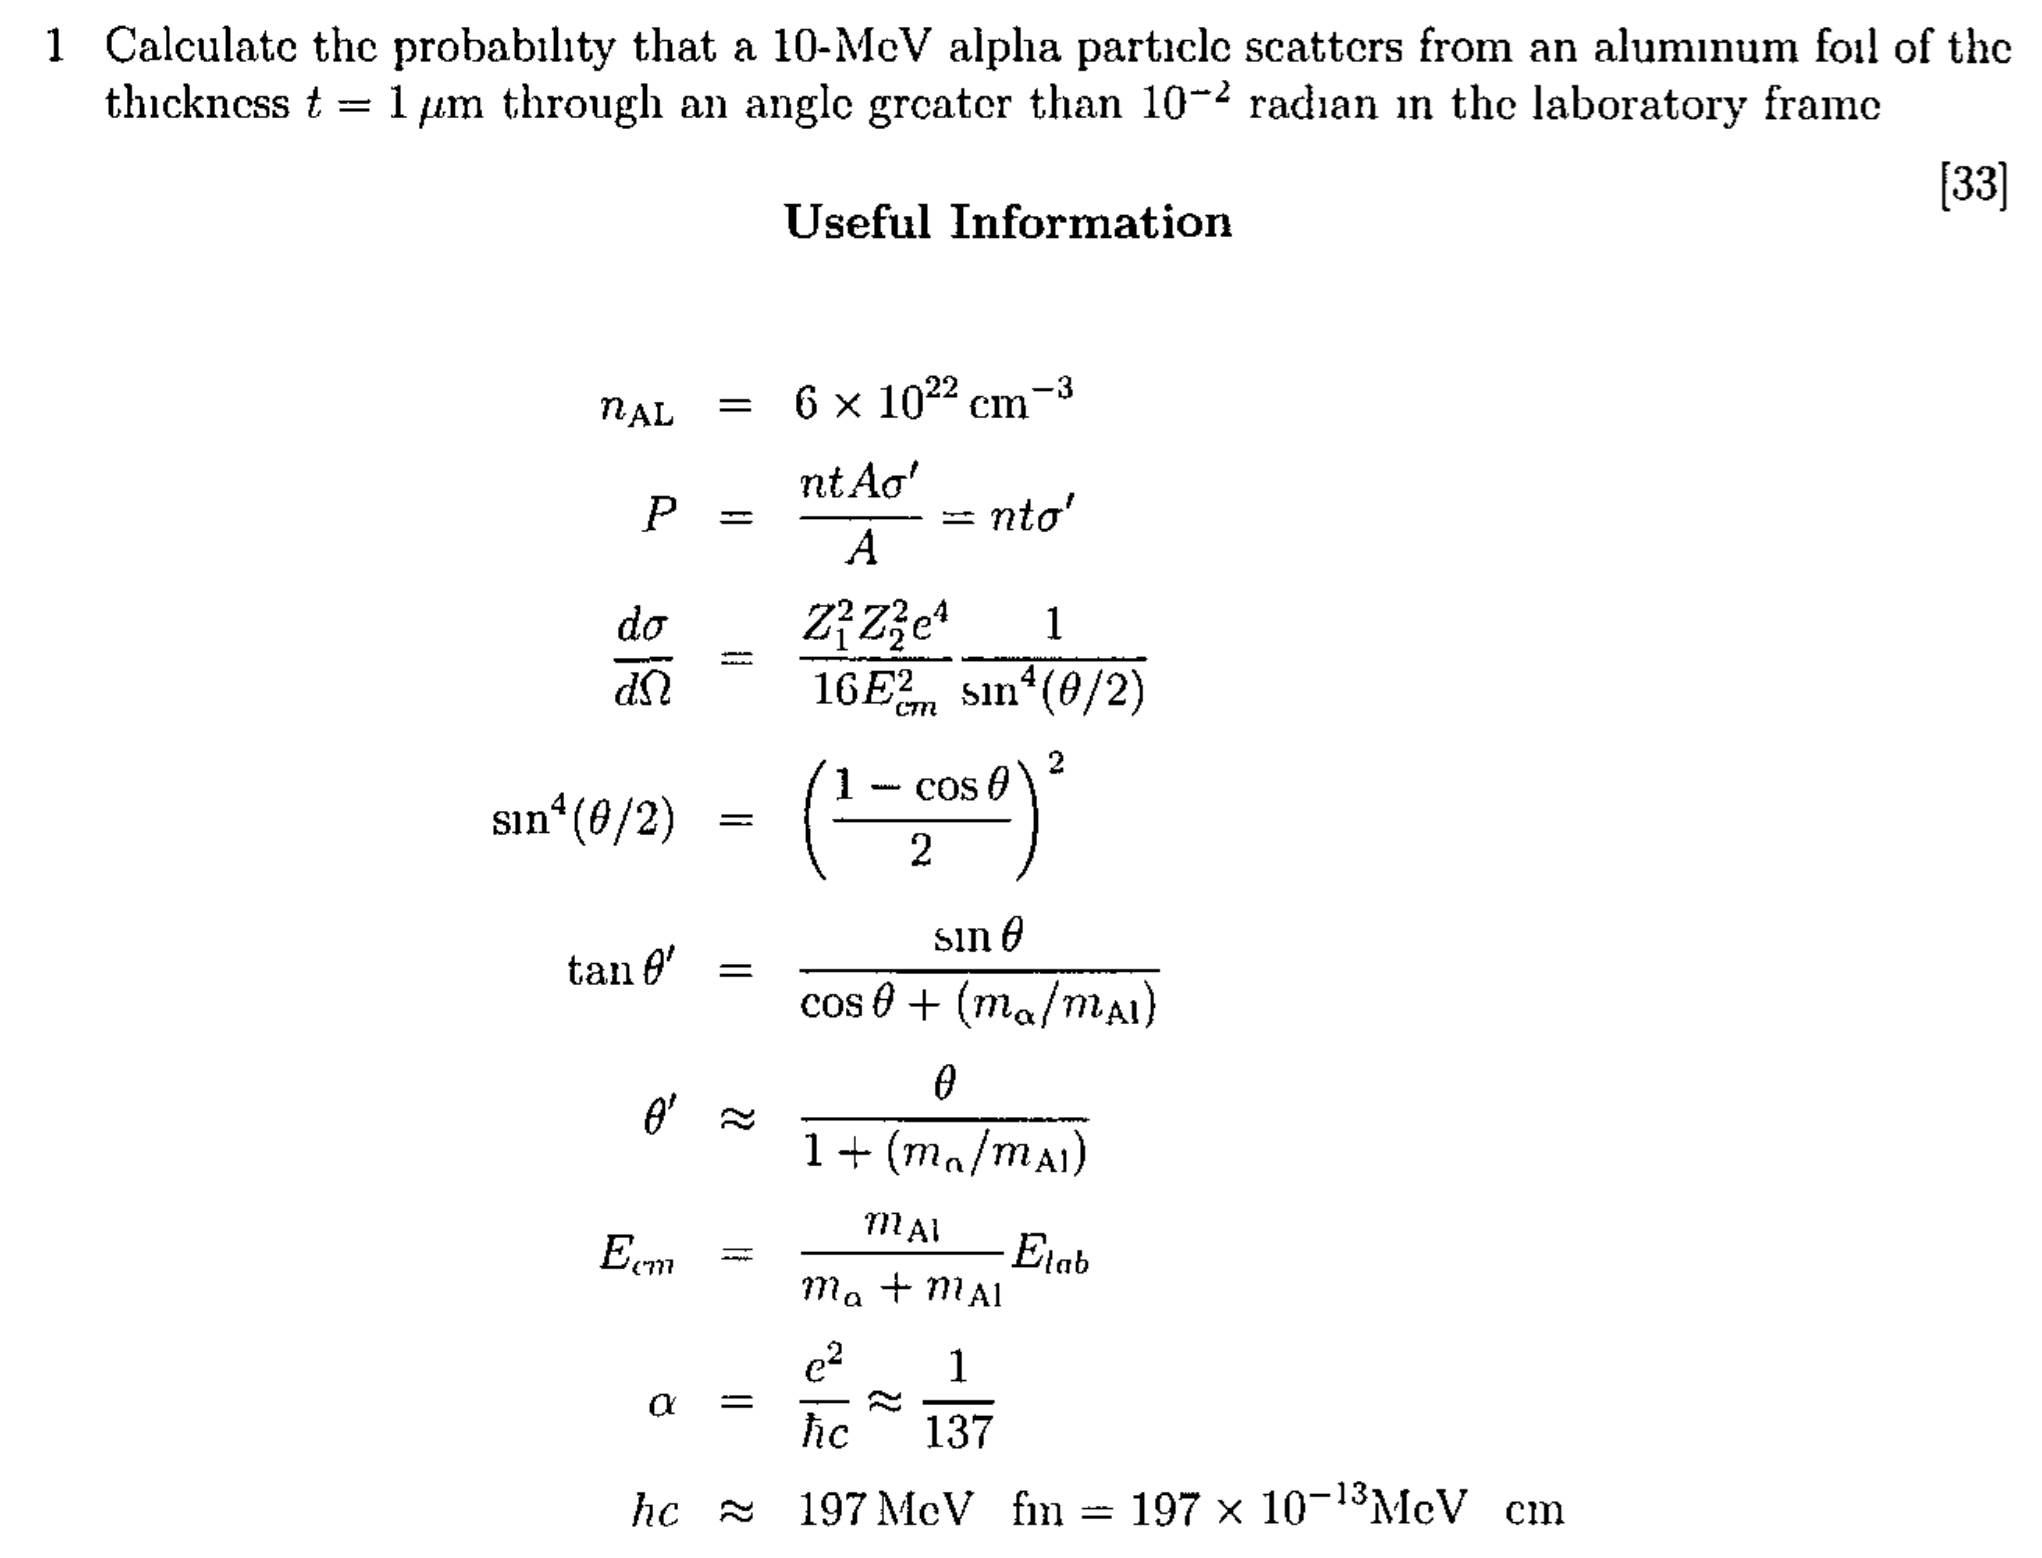 How to calculate the probability 43